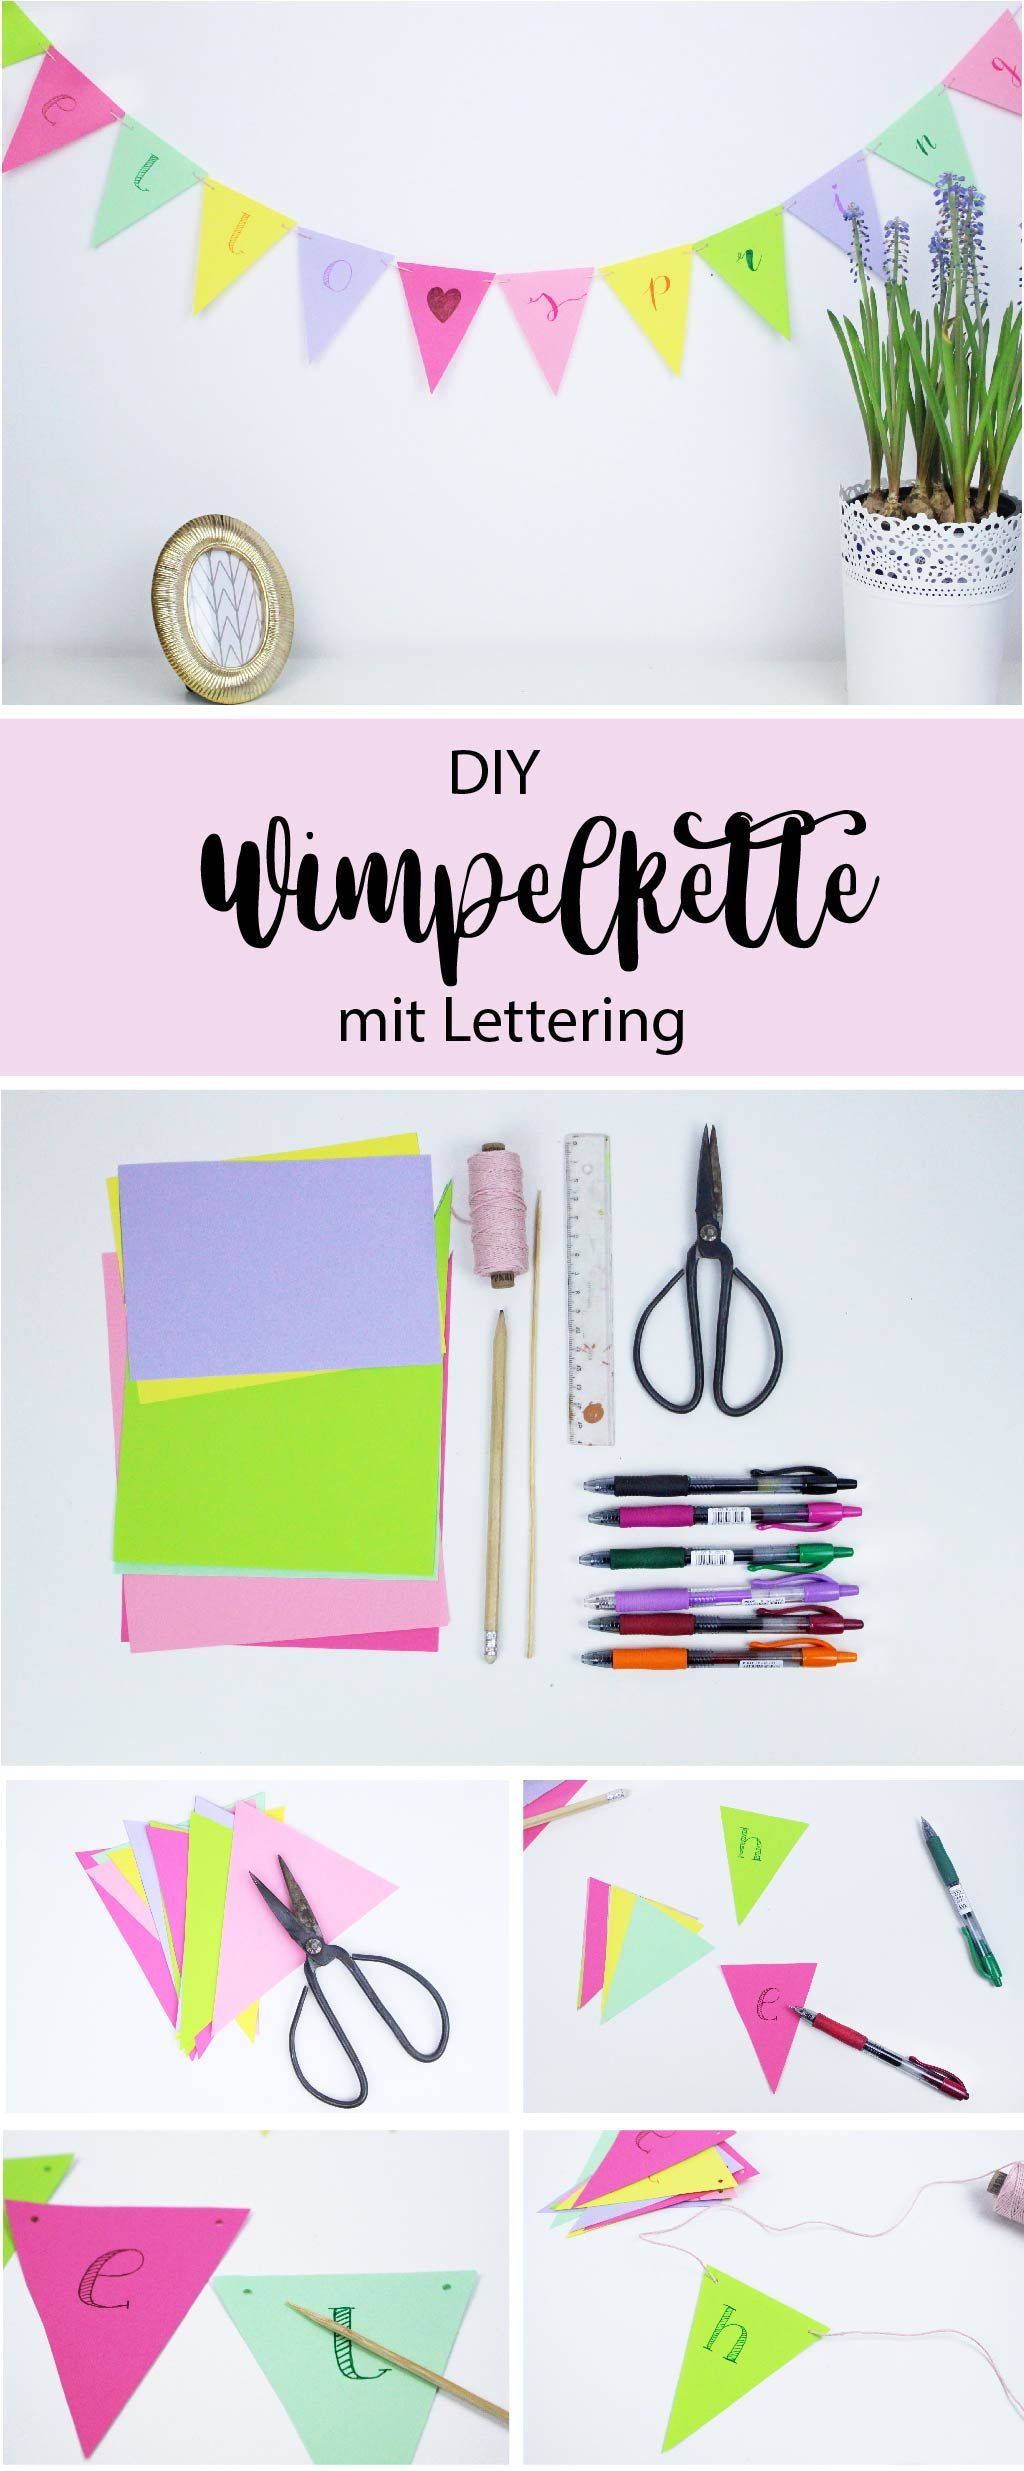 diy fr hlingsdeko wimpelkette mit lettering basteln sch ne diy ideen aus papier basteln. Black Bedroom Furniture Sets. Home Design Ideas